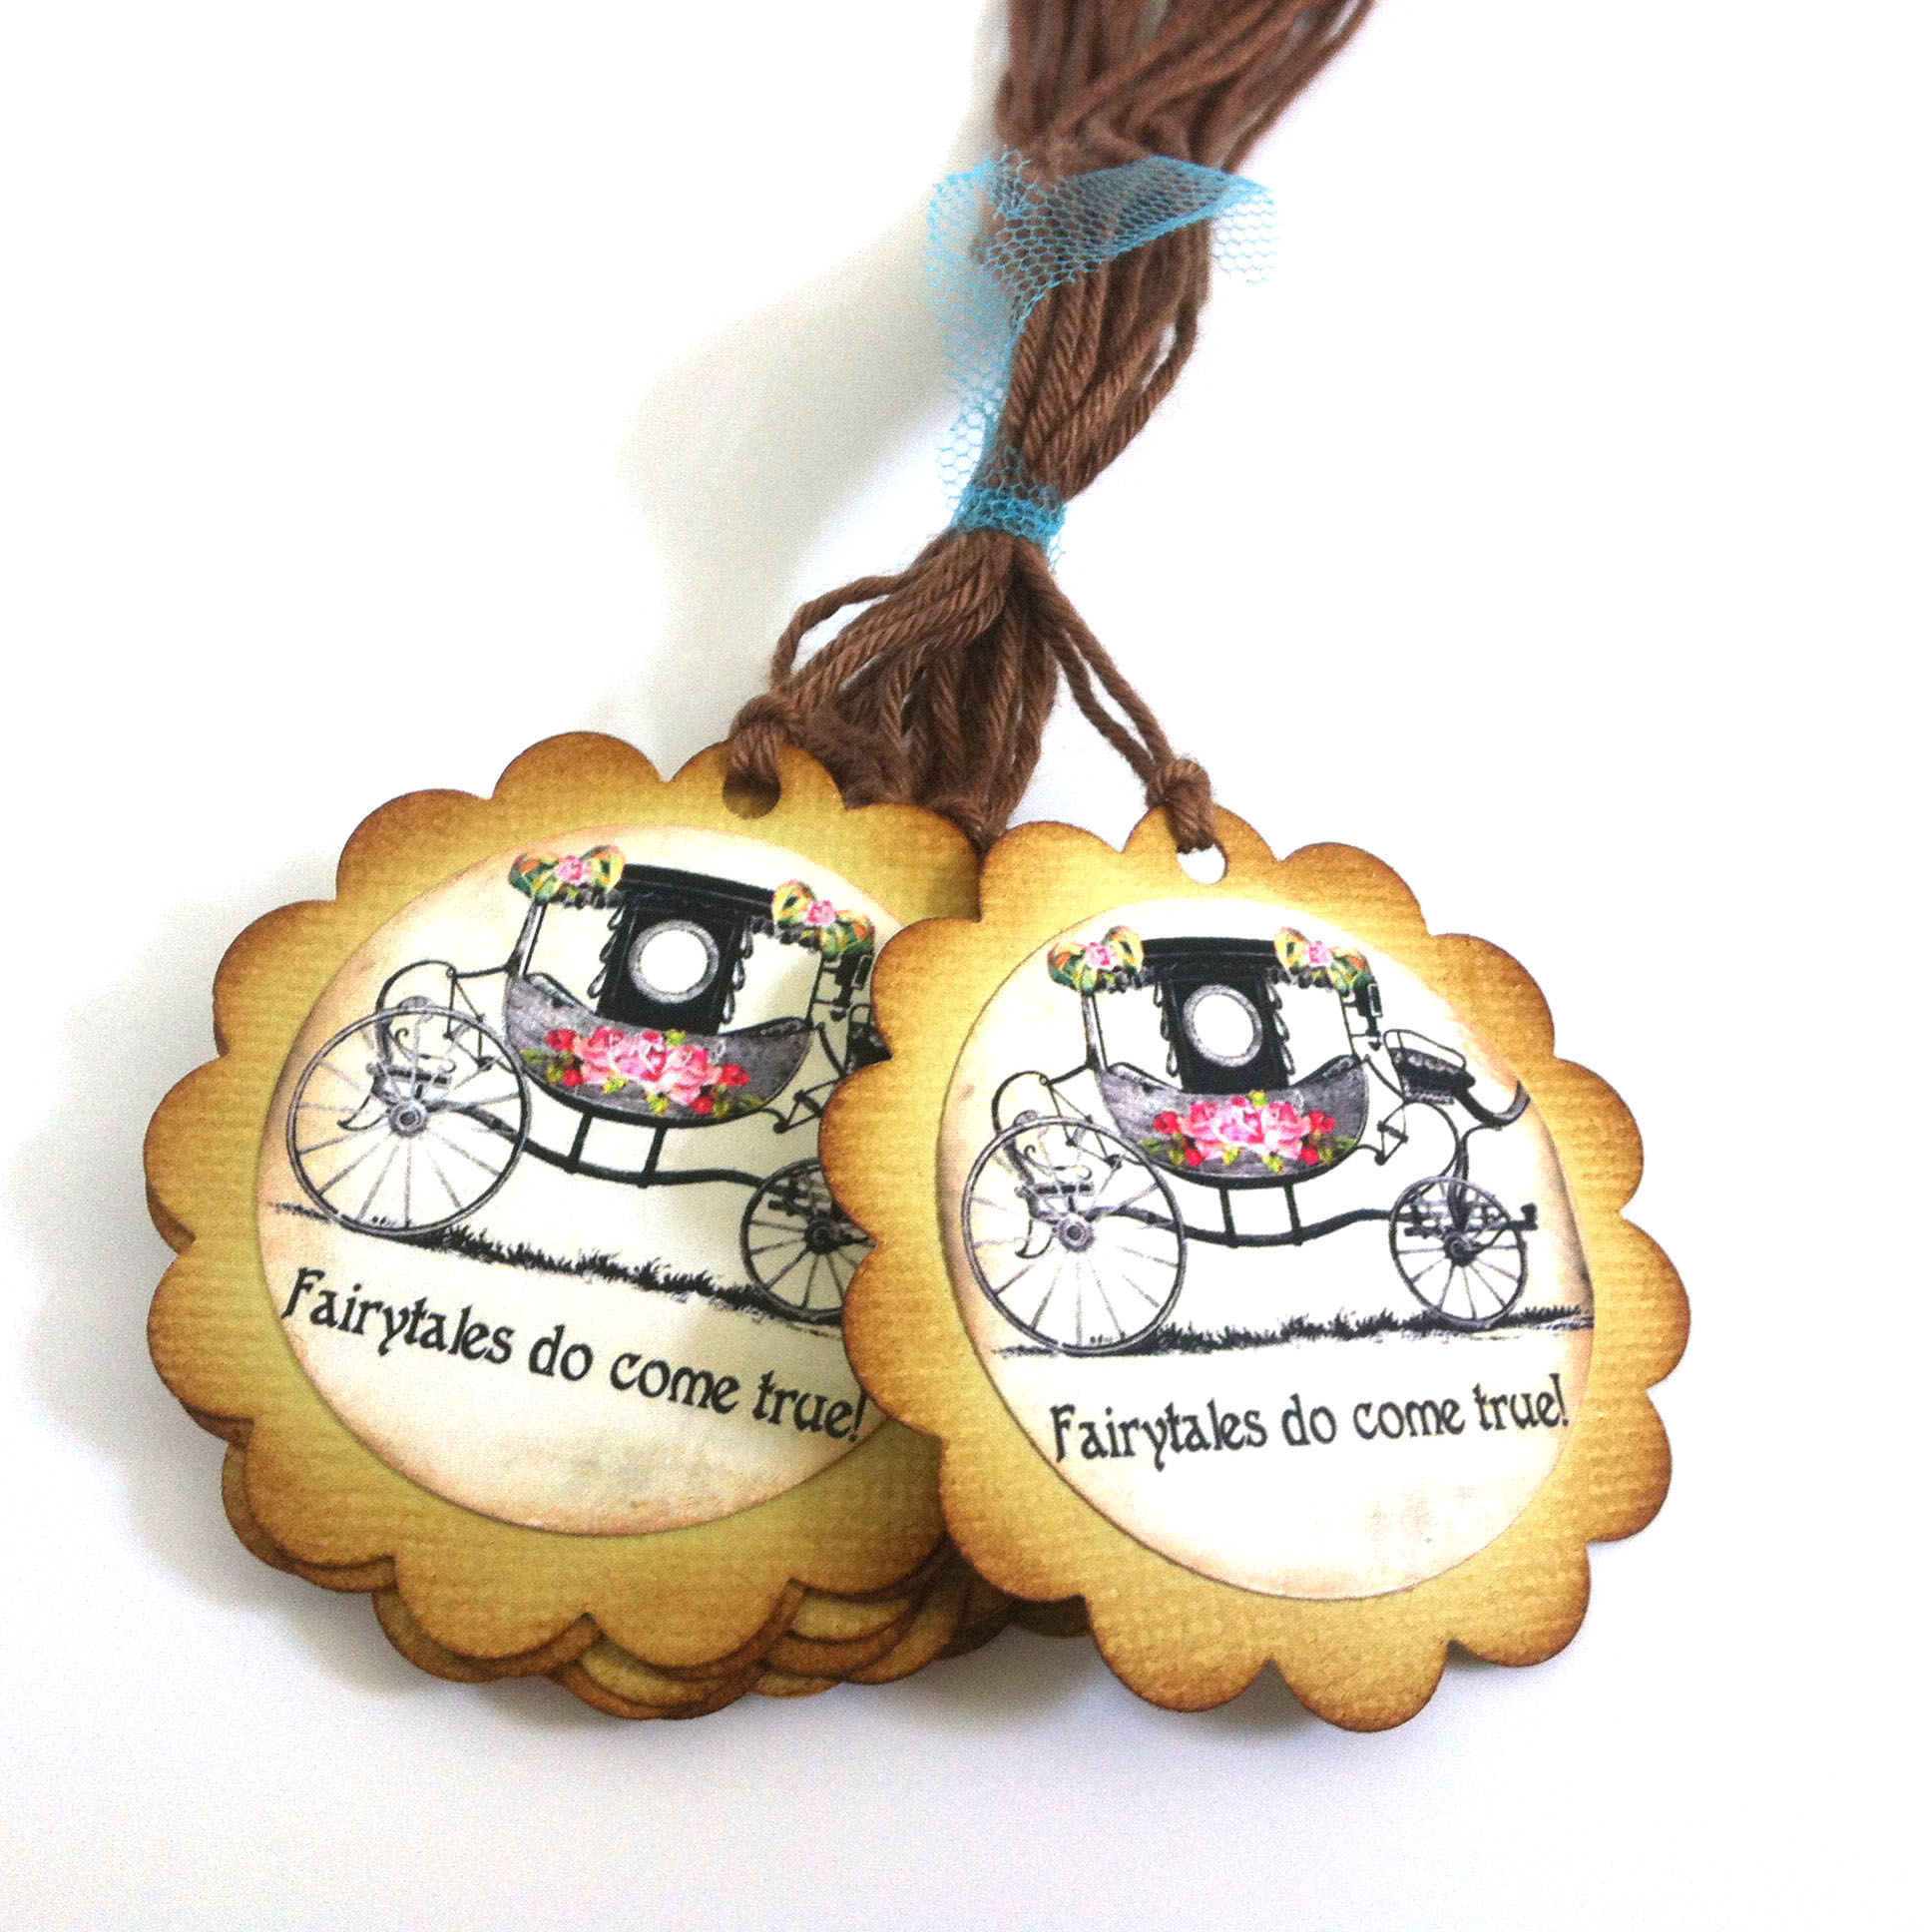 Fairy Tales Wedding Favor Tags - Fairytales Do Come True